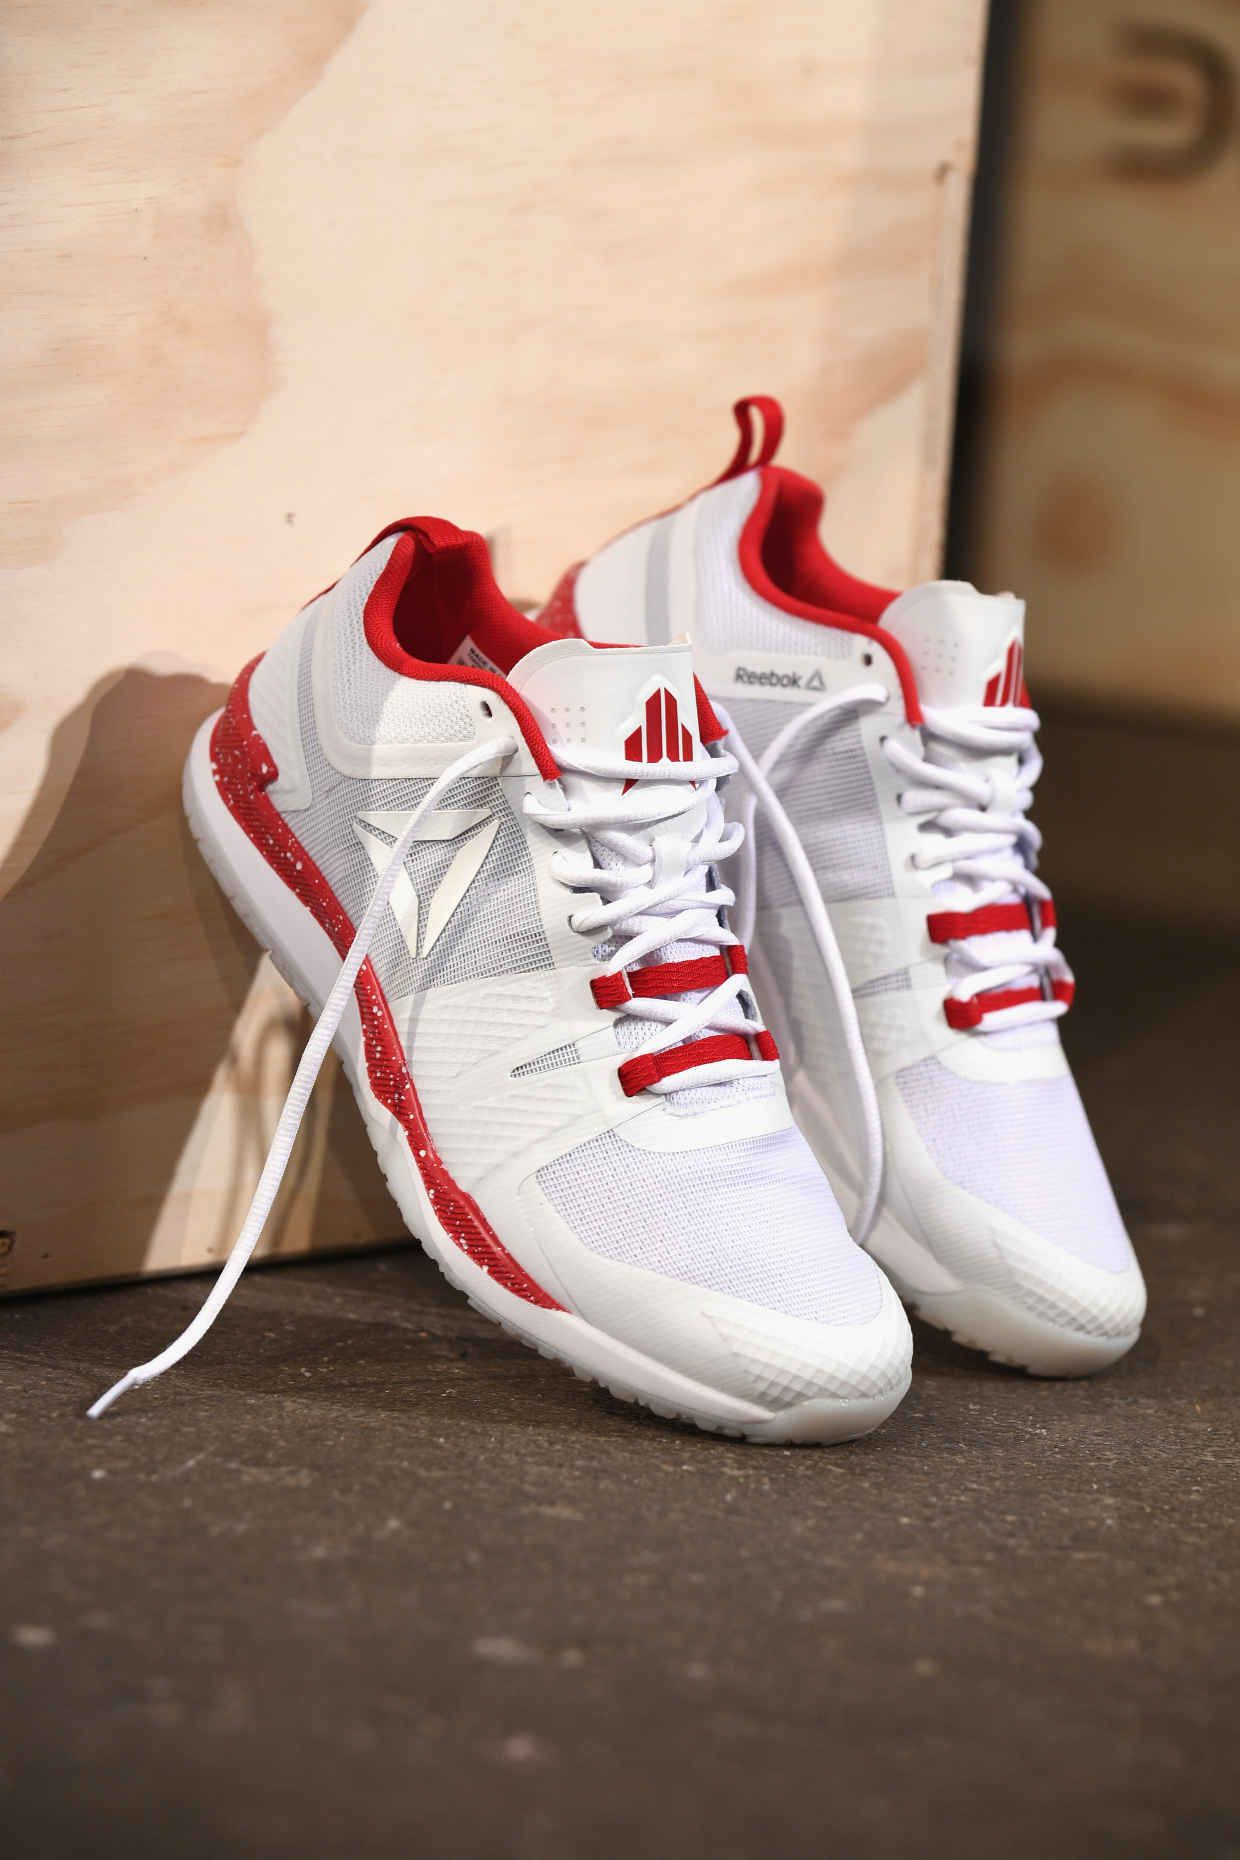 689dd81fdc17 Reebok Is Launching J.J. Watt s First Signature Training Shoe - Freshness  Mag